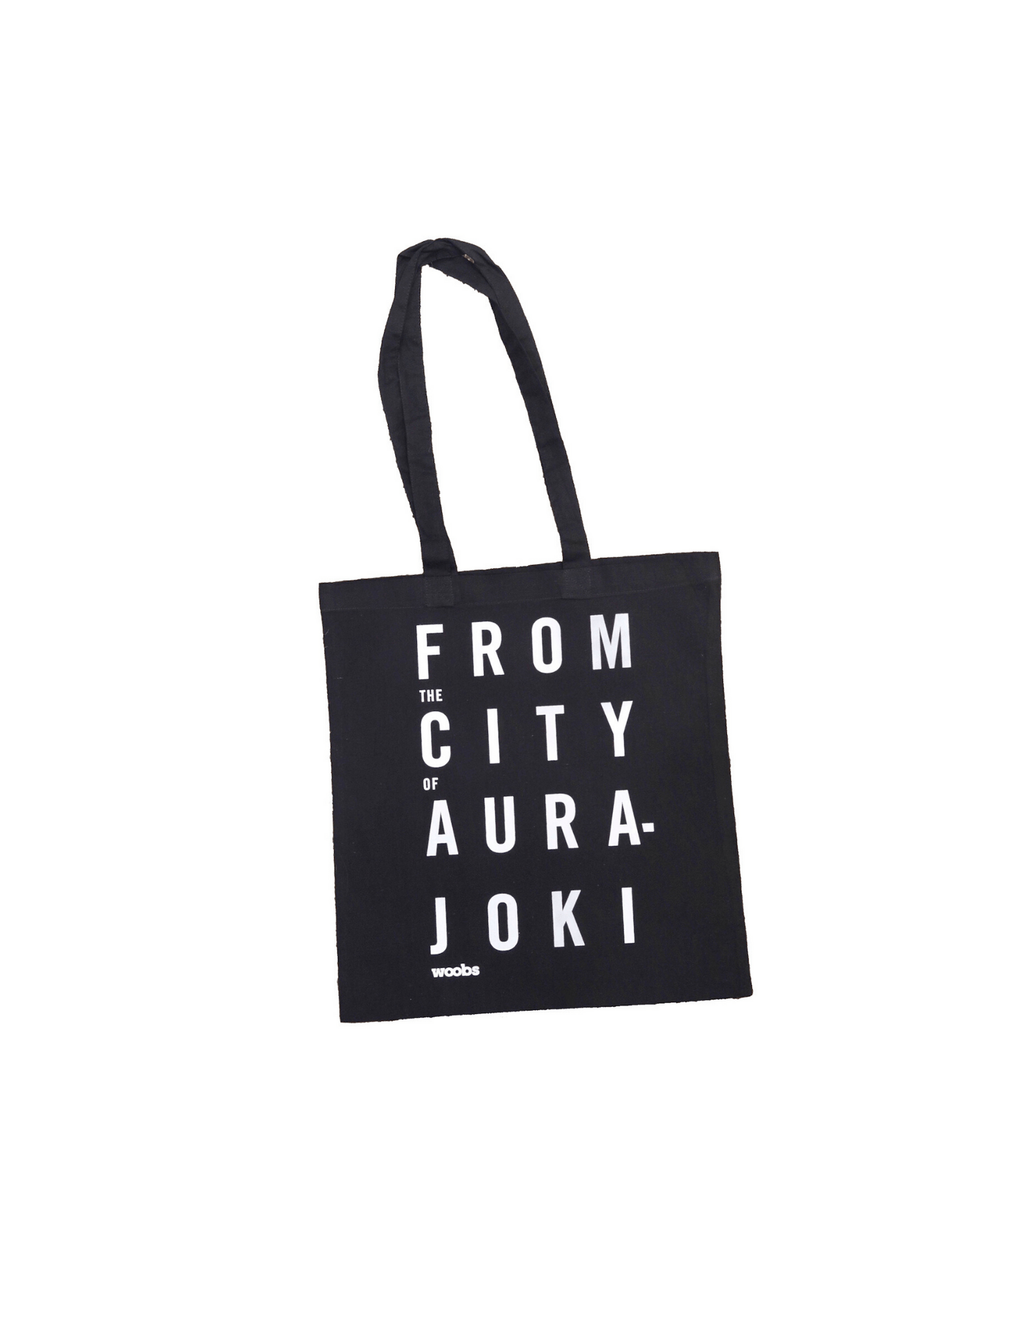 From The City Of Aurajoki Tote Bag PRE-SALE